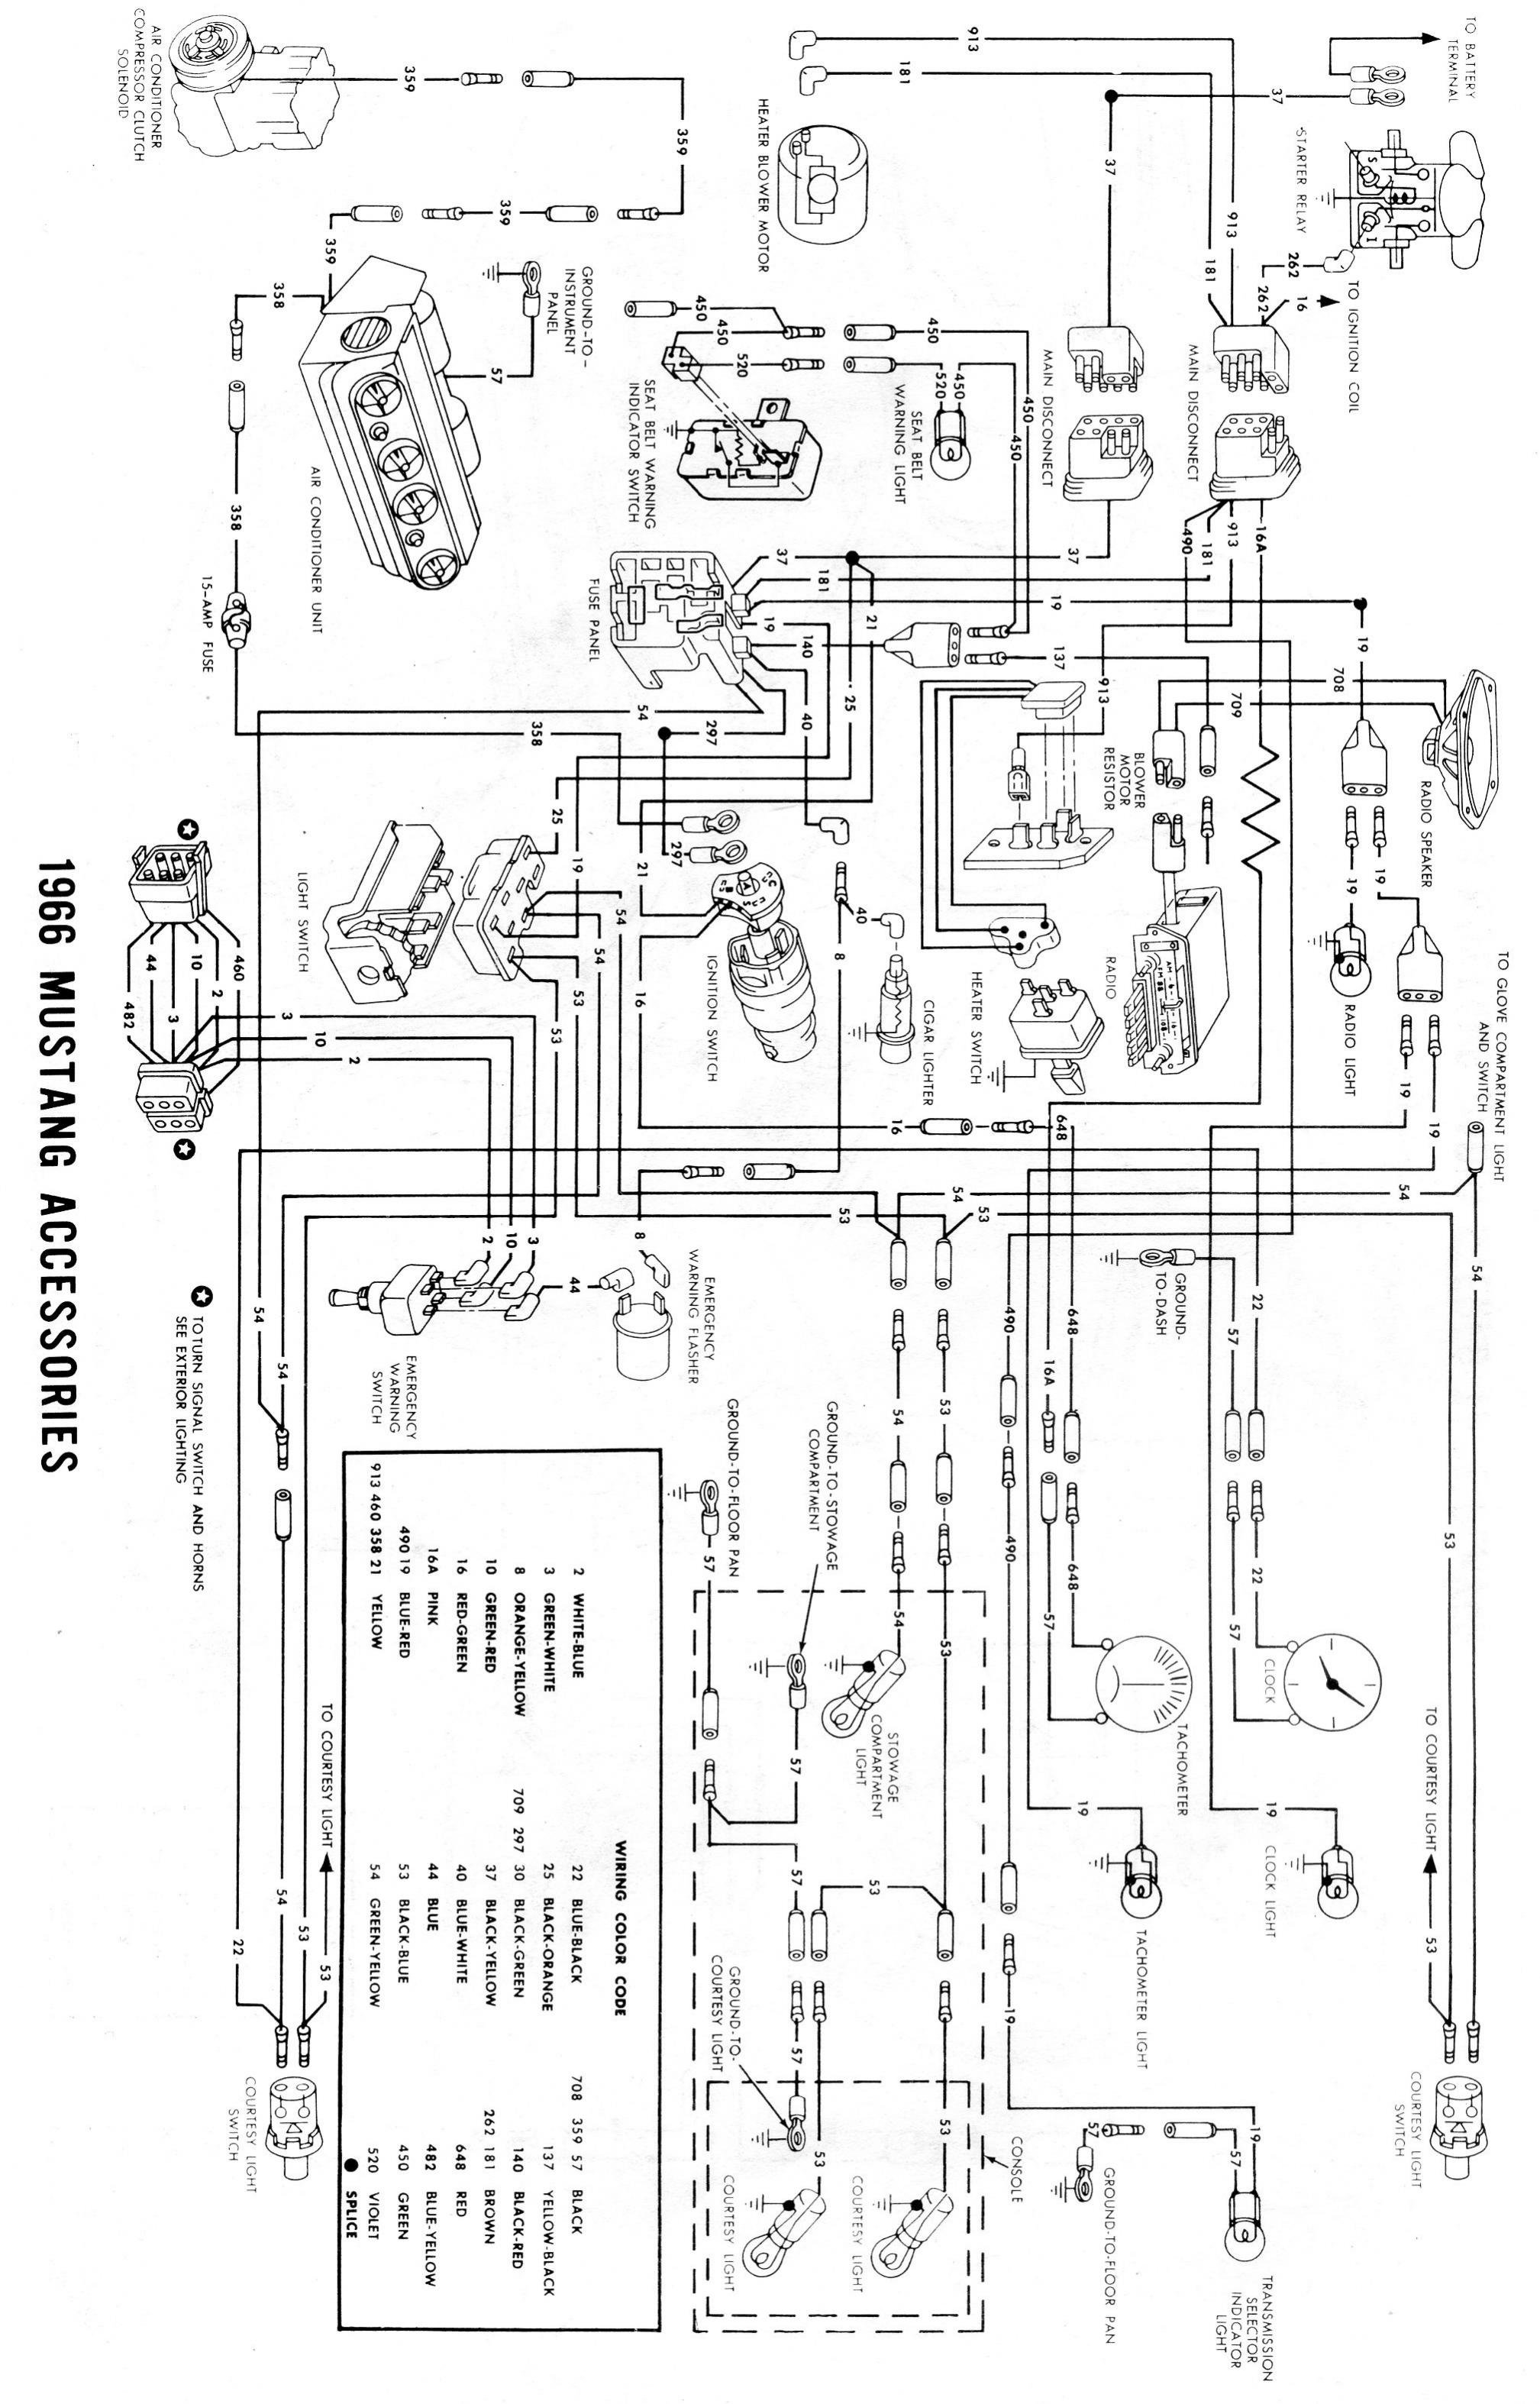 1967 mustang stereo wiring diagram images stereo wiring diagram 1968 mustang turn signal wiring diagram printable amp